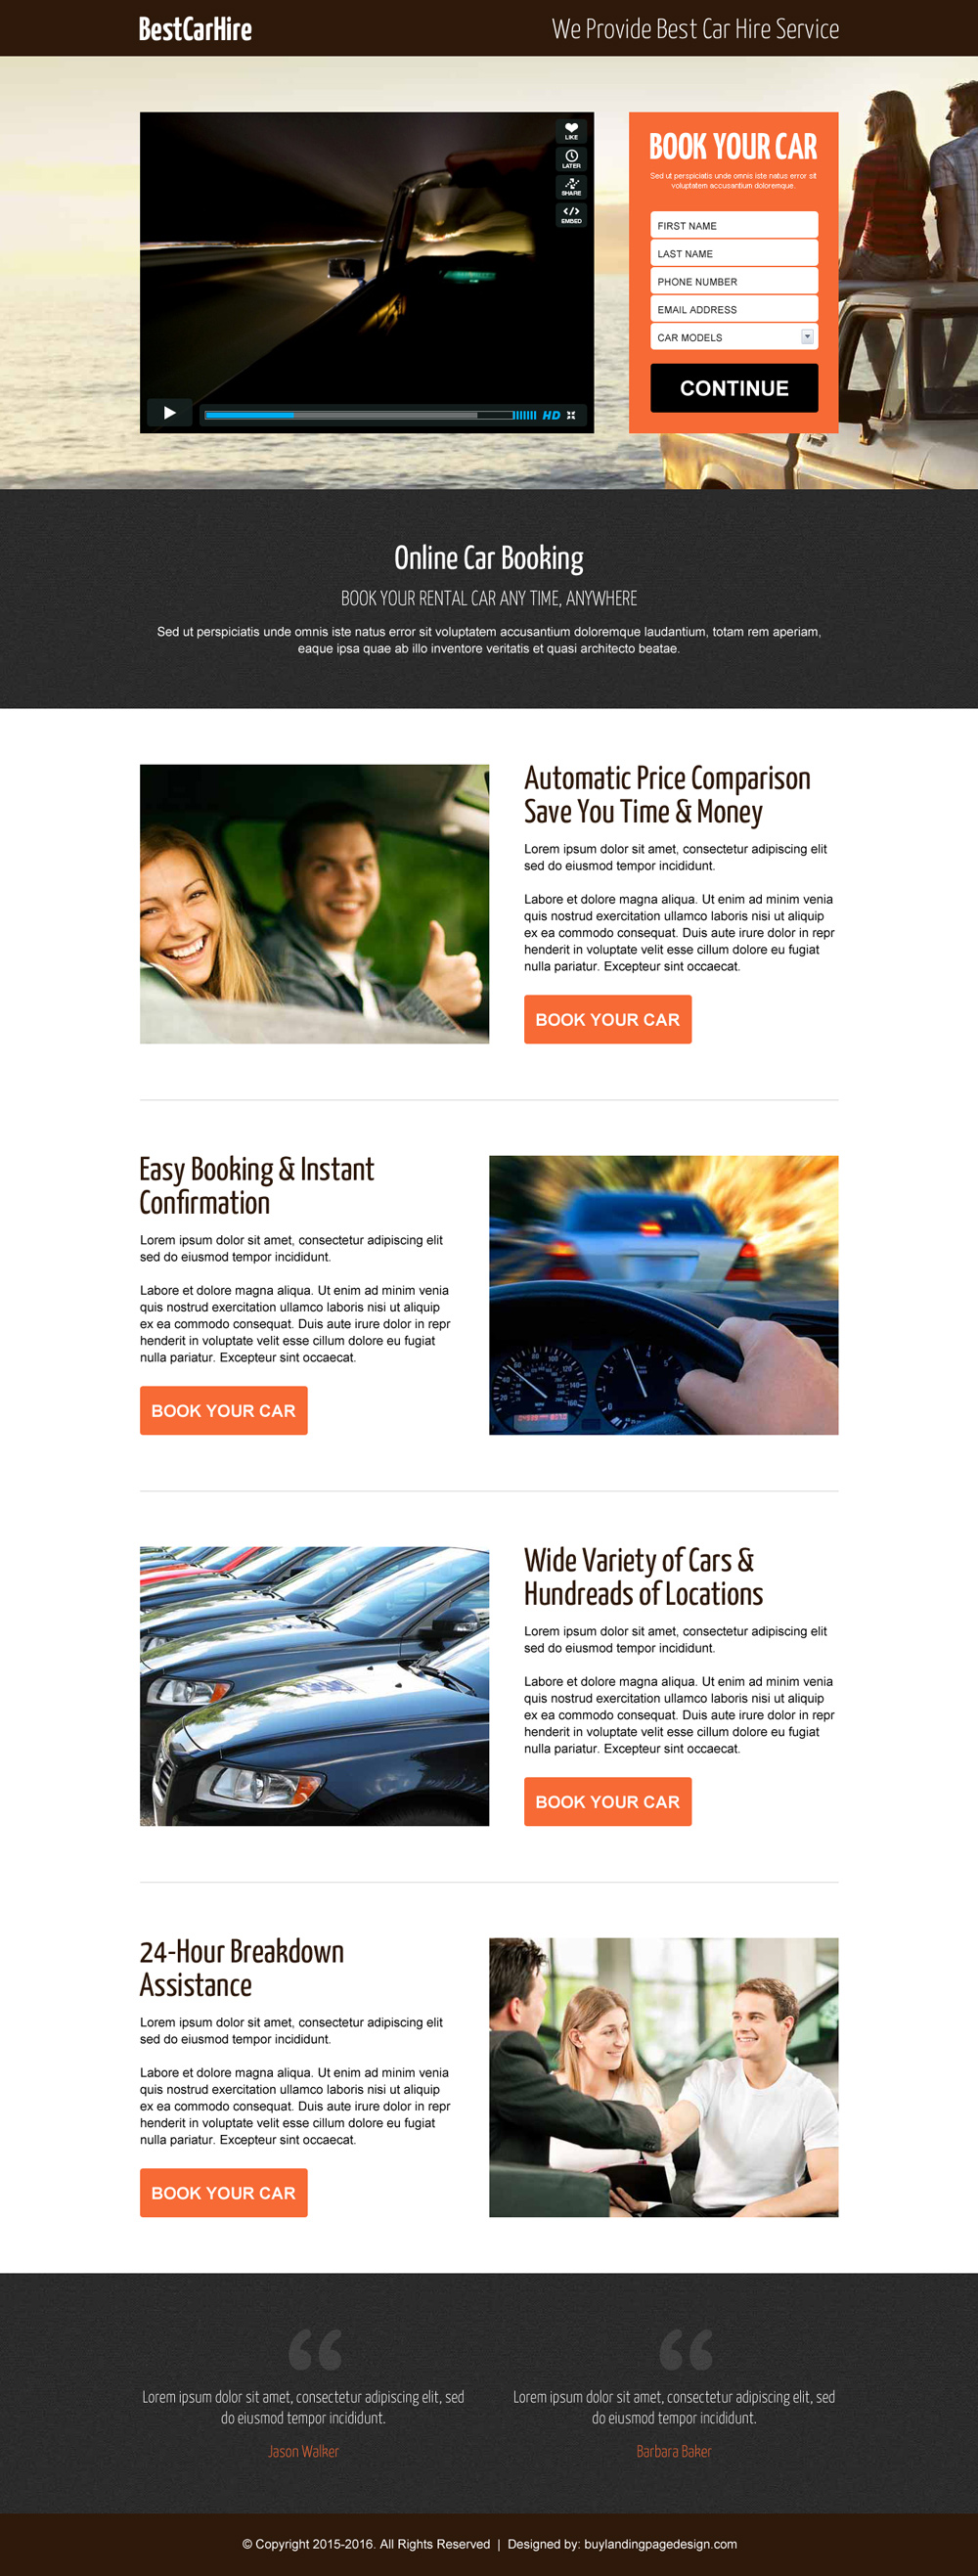 car-hire-video-landing-page-design-template-to-capture-car-hire-leads-012